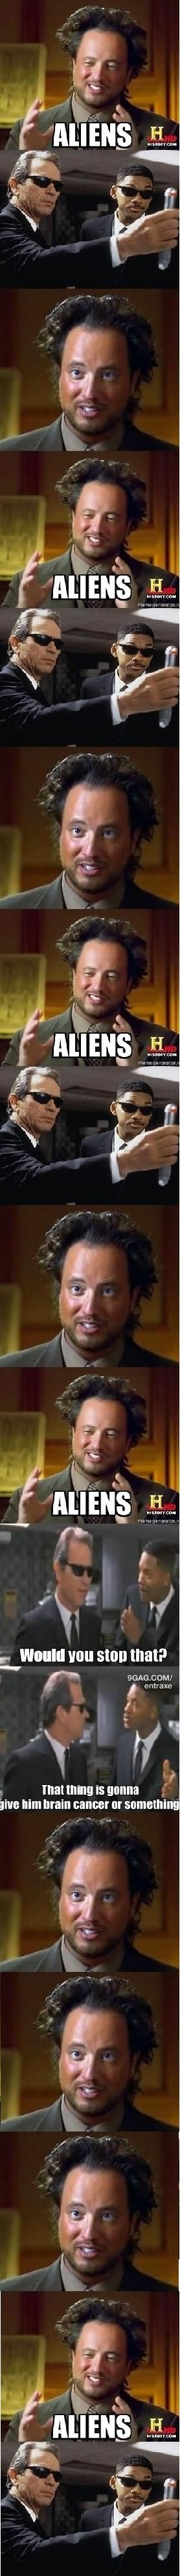 Aliens…  Enough said. Men In Black Mind Eraser on crazy Alien guy from History Channel. Funny Meme